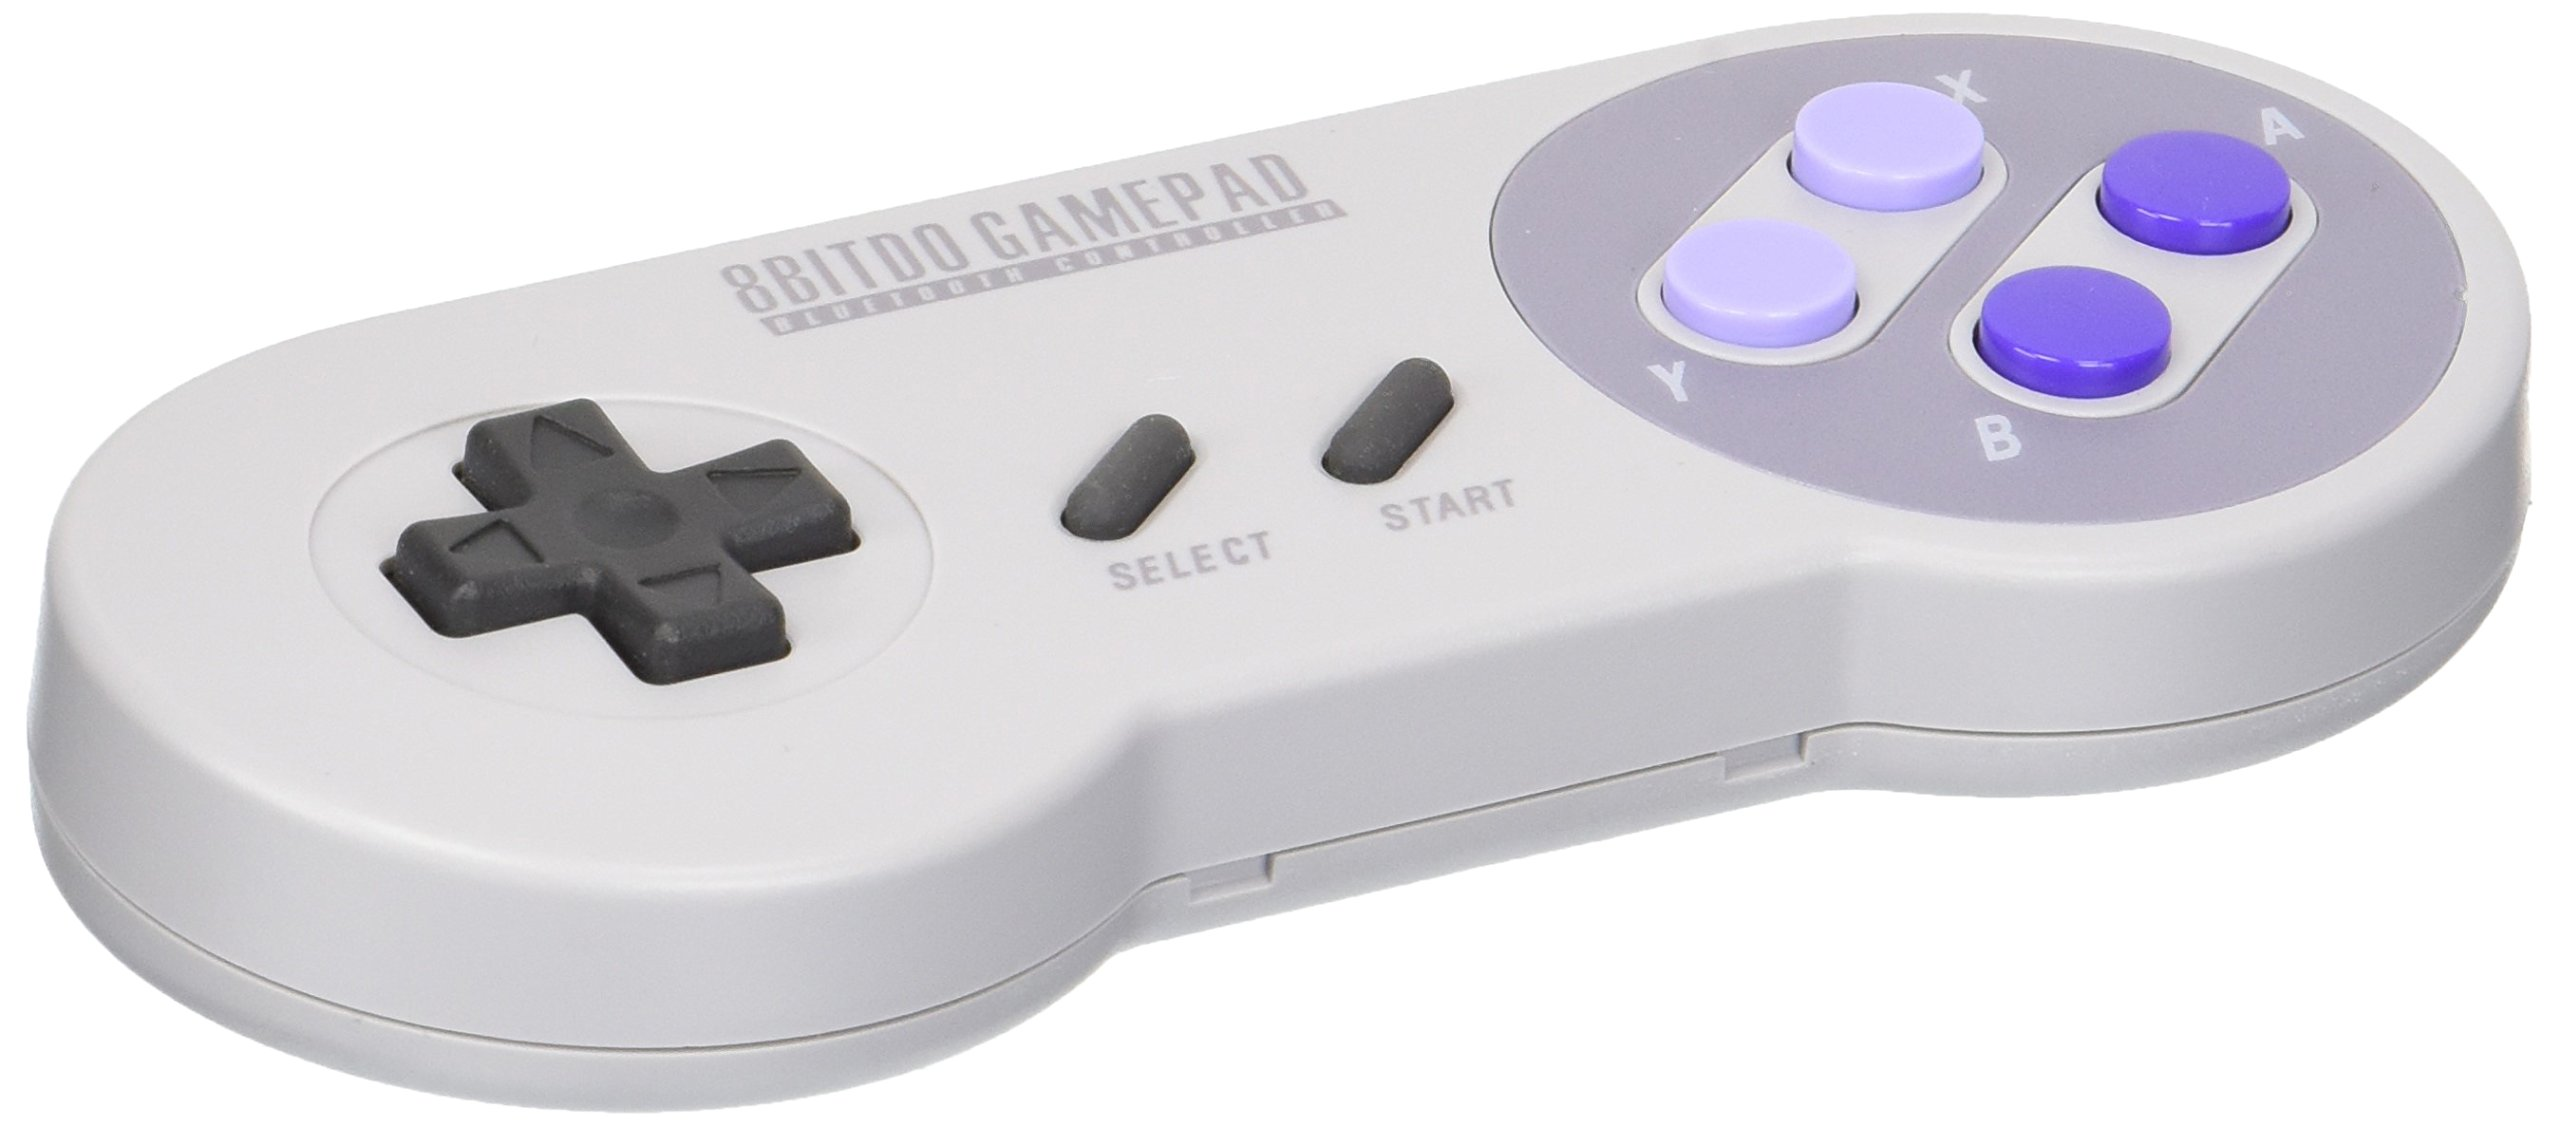 how to set up 8bitdo snes30 controller ios